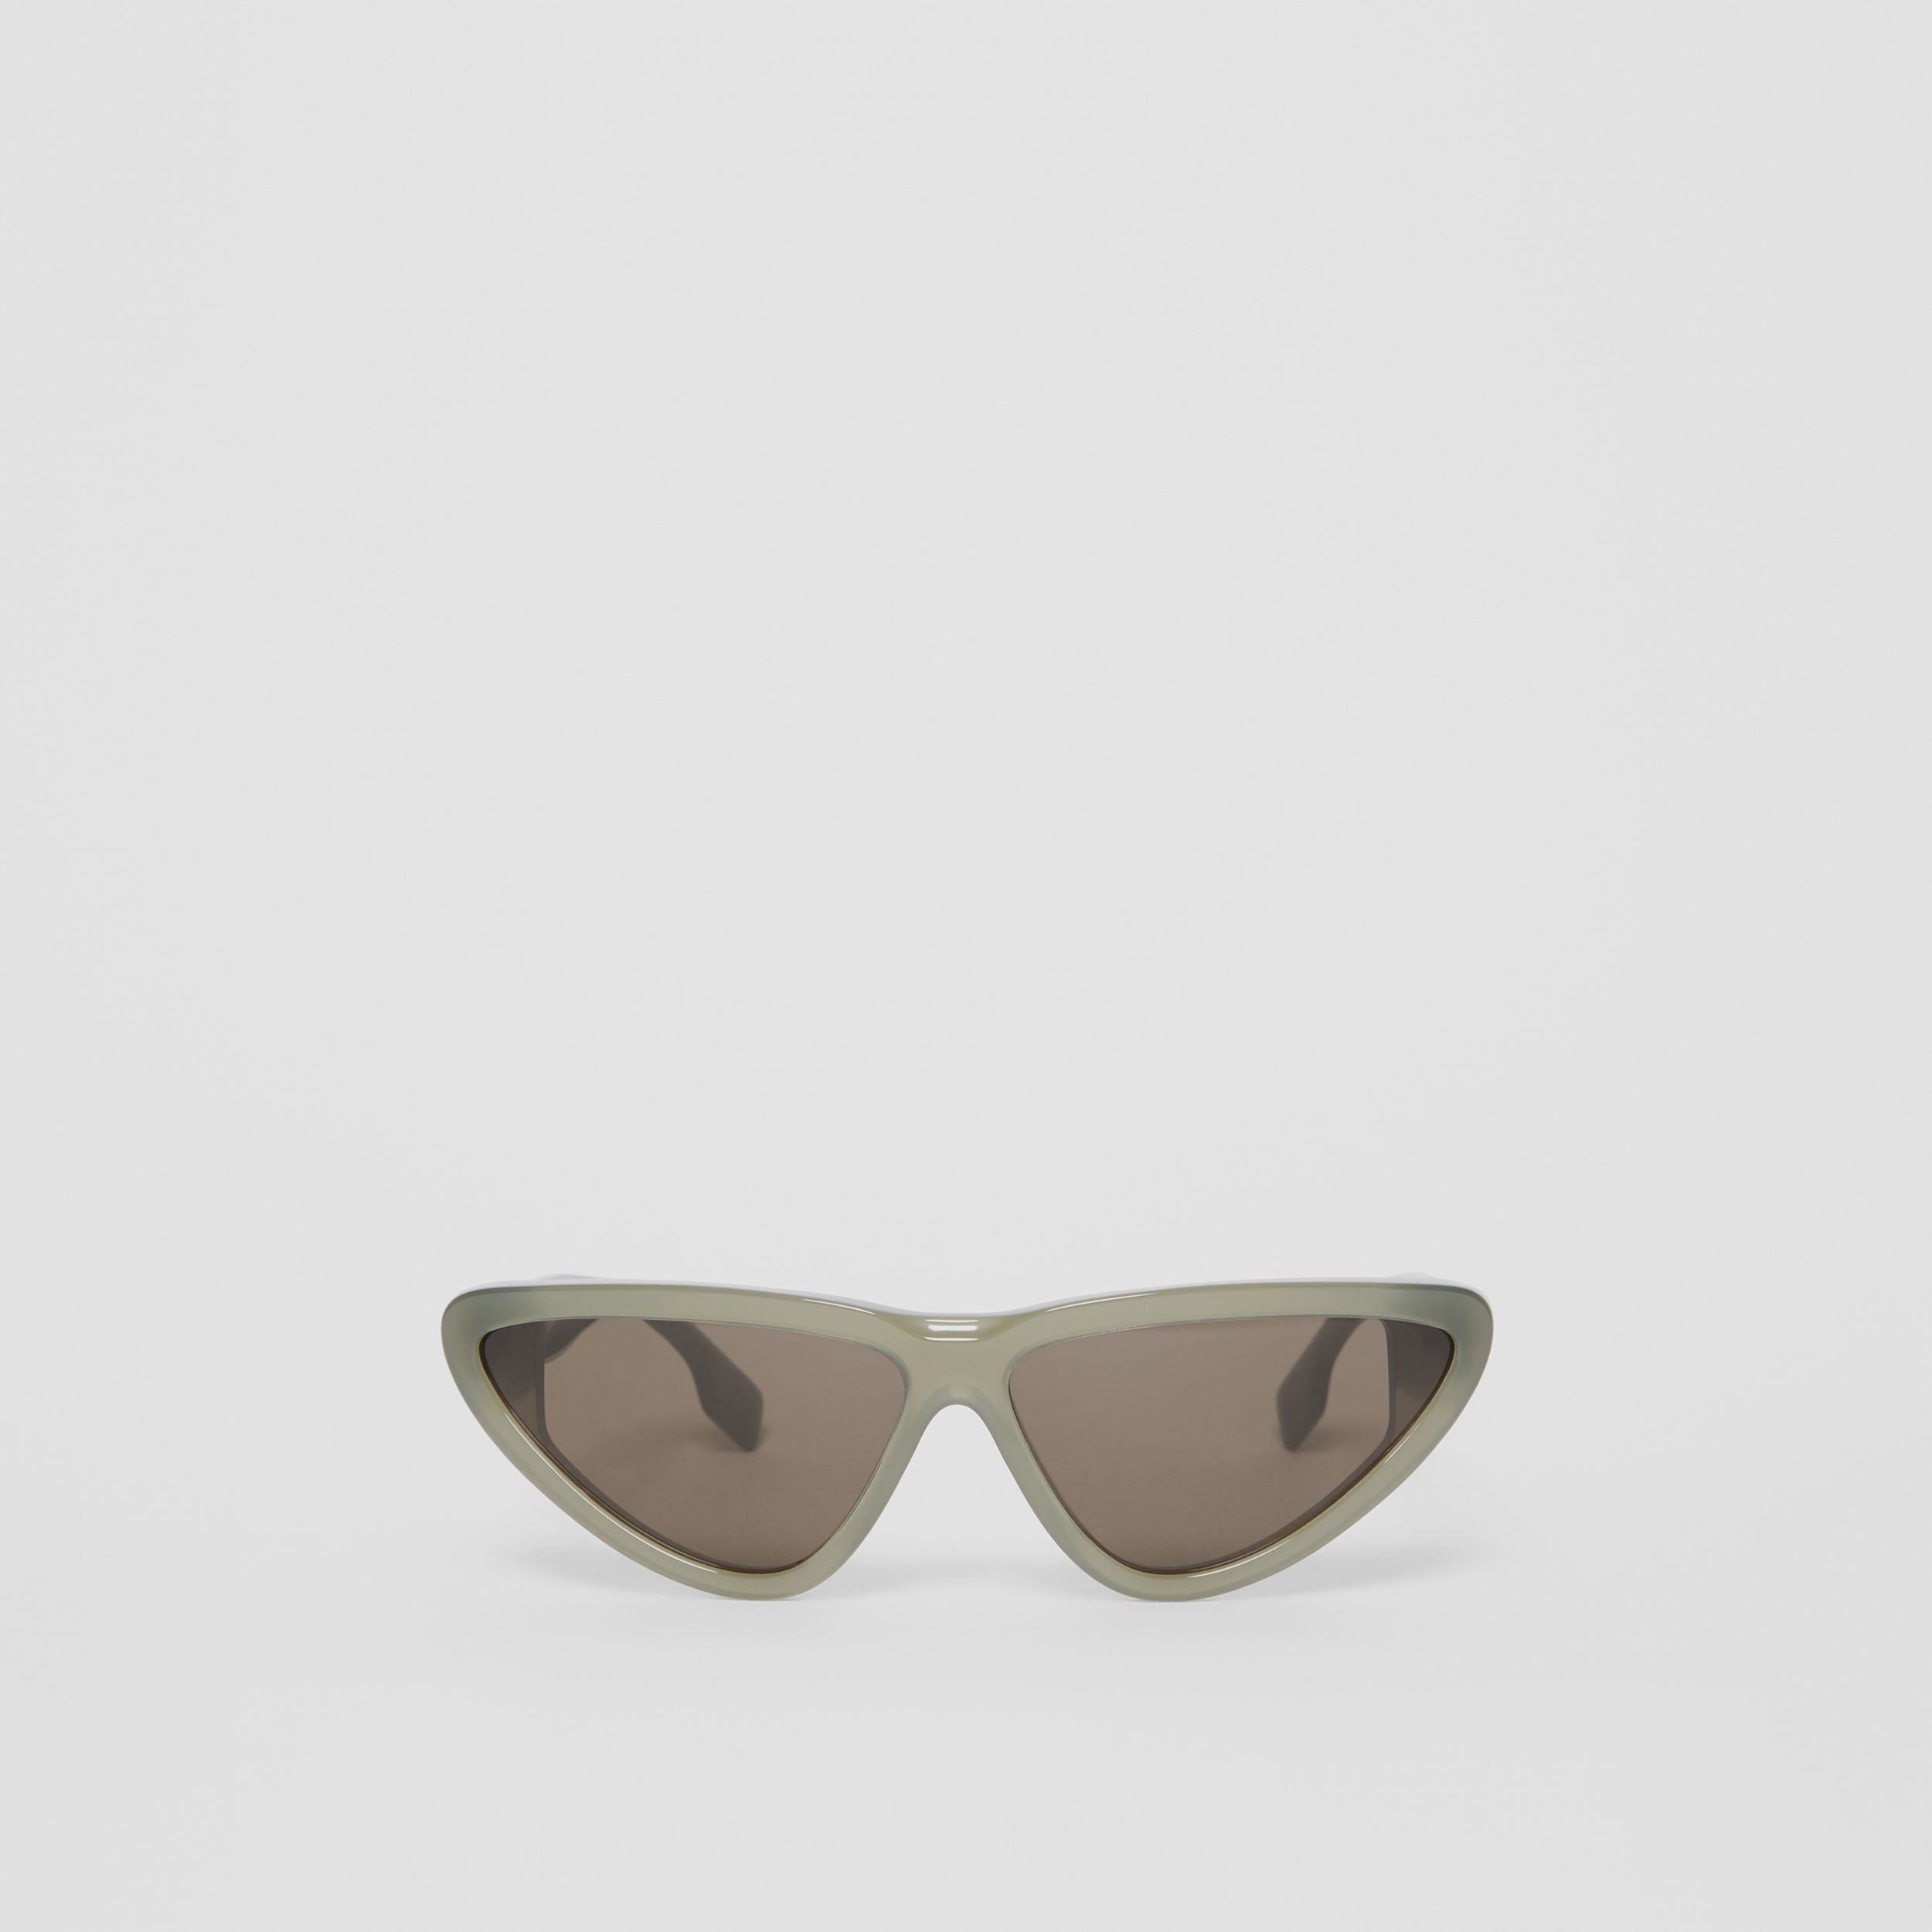 Triangular Frame Sunglasses in Opal Green | Burberry - 1